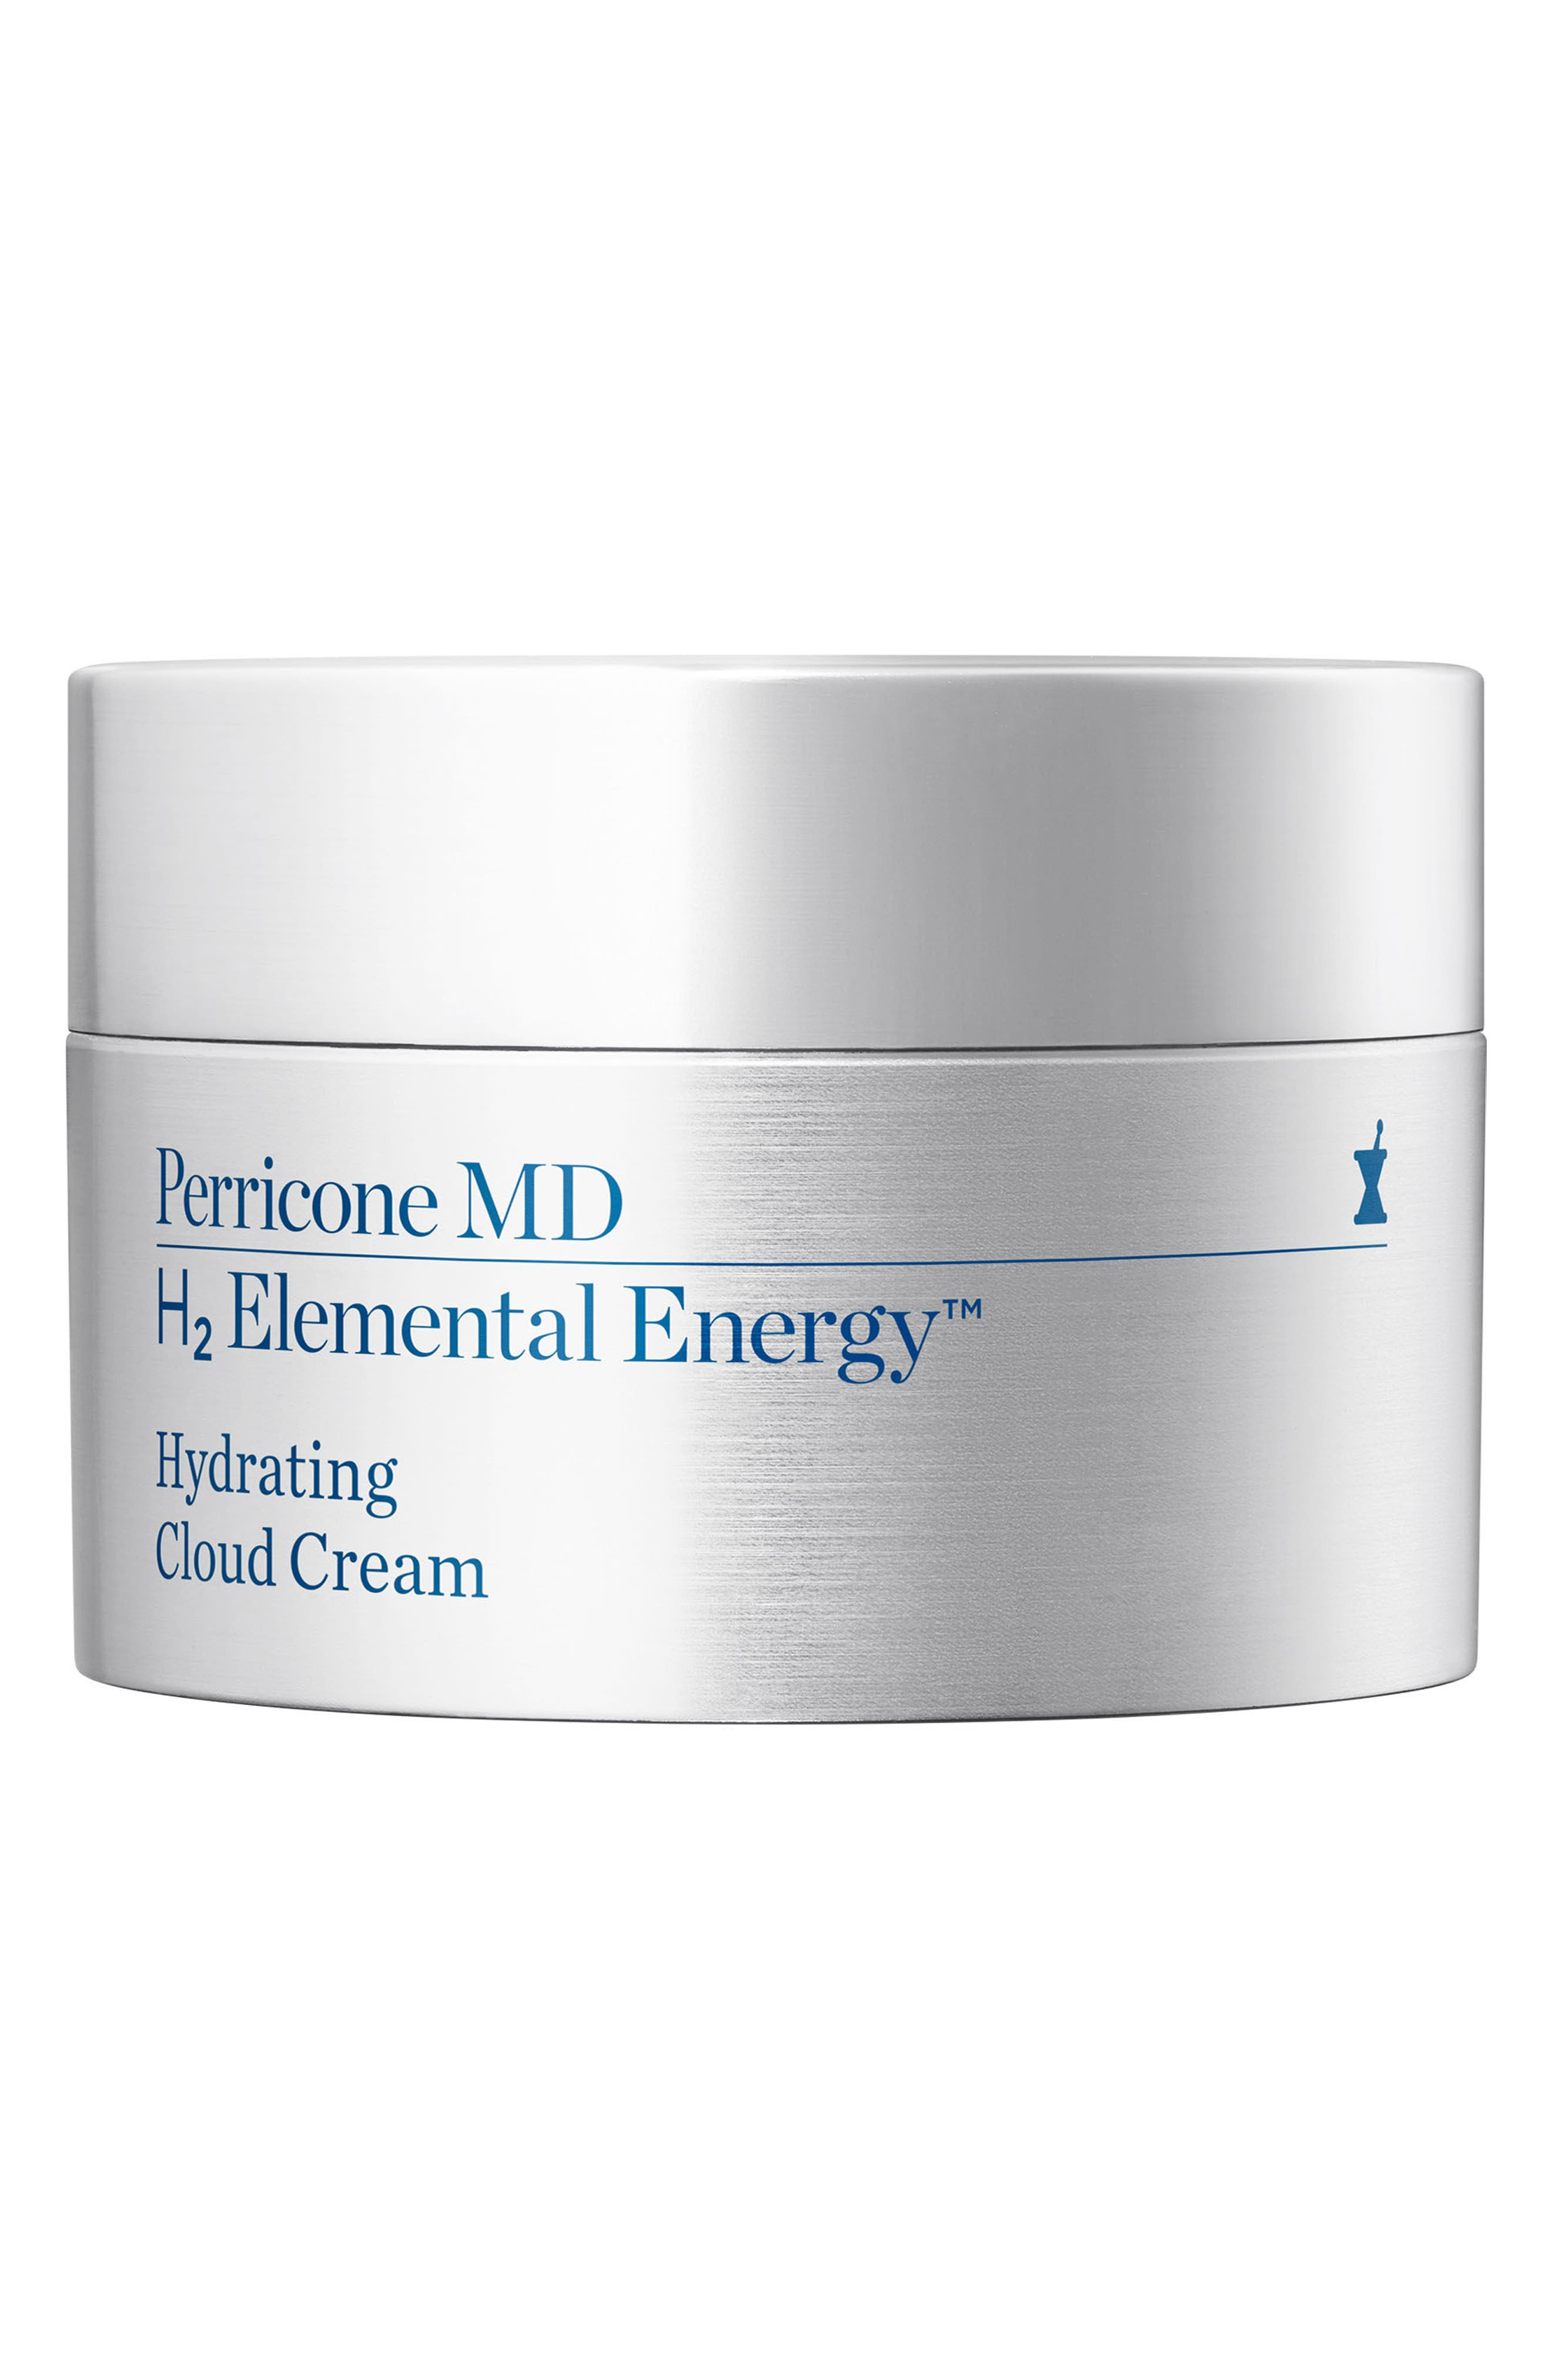 H2 Elemental Energy Hydrating Cloud Cream,                         Main,                         color, No Color